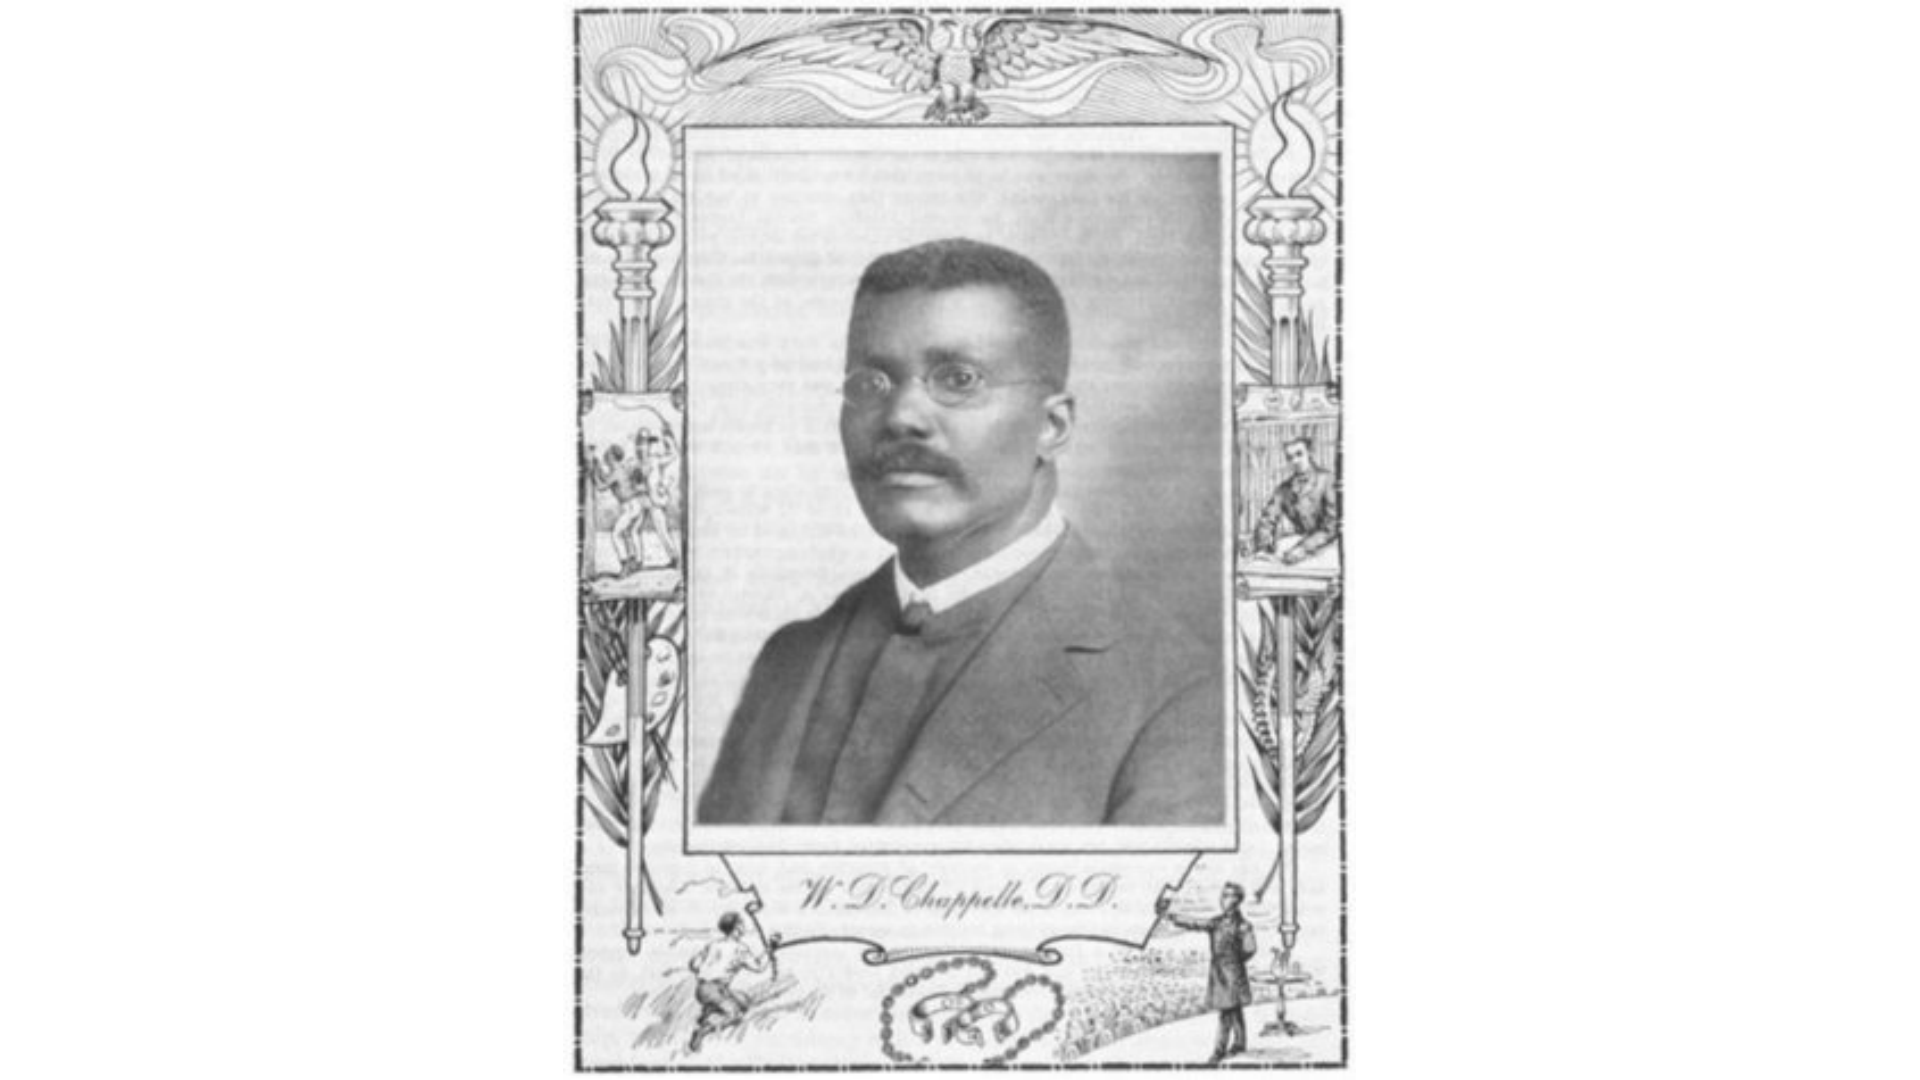 Bishop William David Chappelle, Dave's great grandfather, who lead a black delegation to Woodrow Wilson's White House